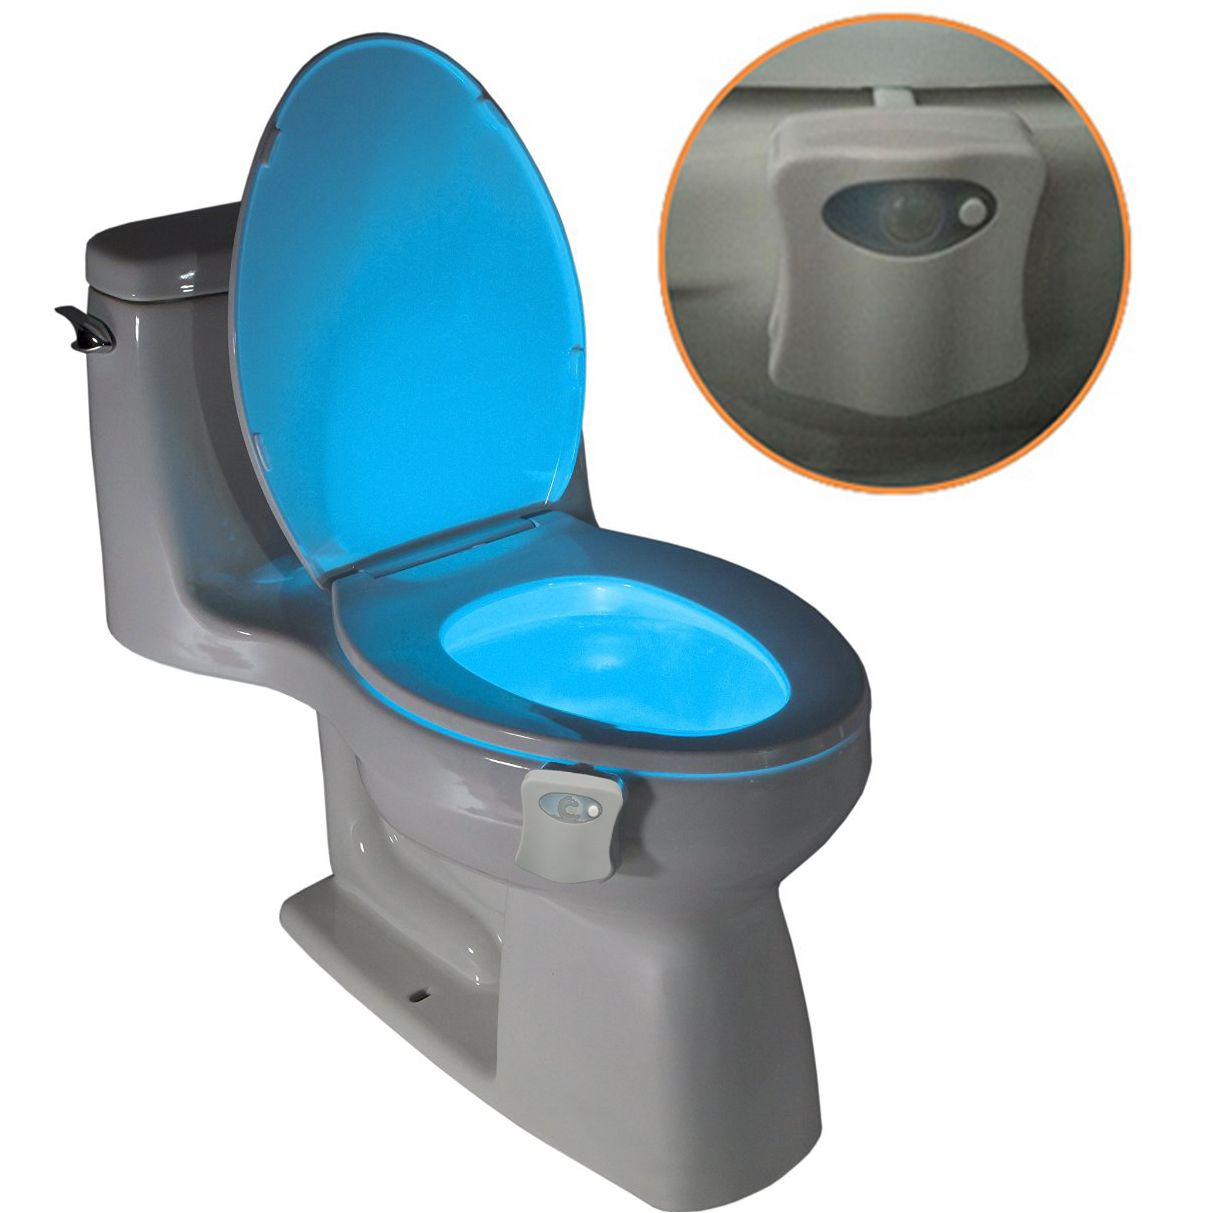 You Can Now Set Your Toilet Nightlight Color In Your Bowl To Match